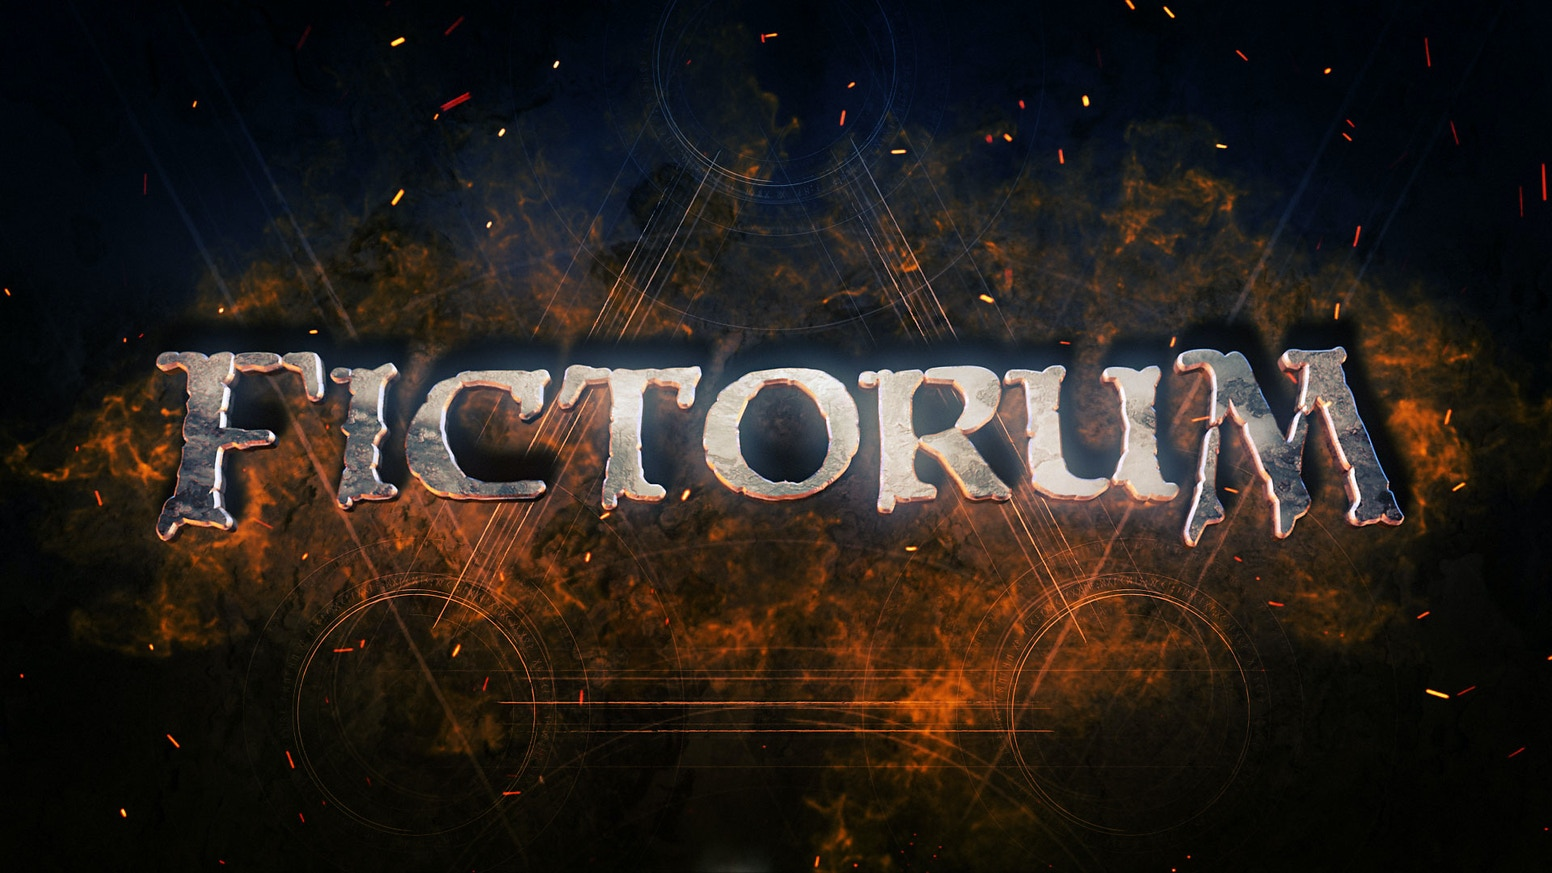 Fictorum is an action RPG featuring customizable, dynamic spell-casting and destructible structures.